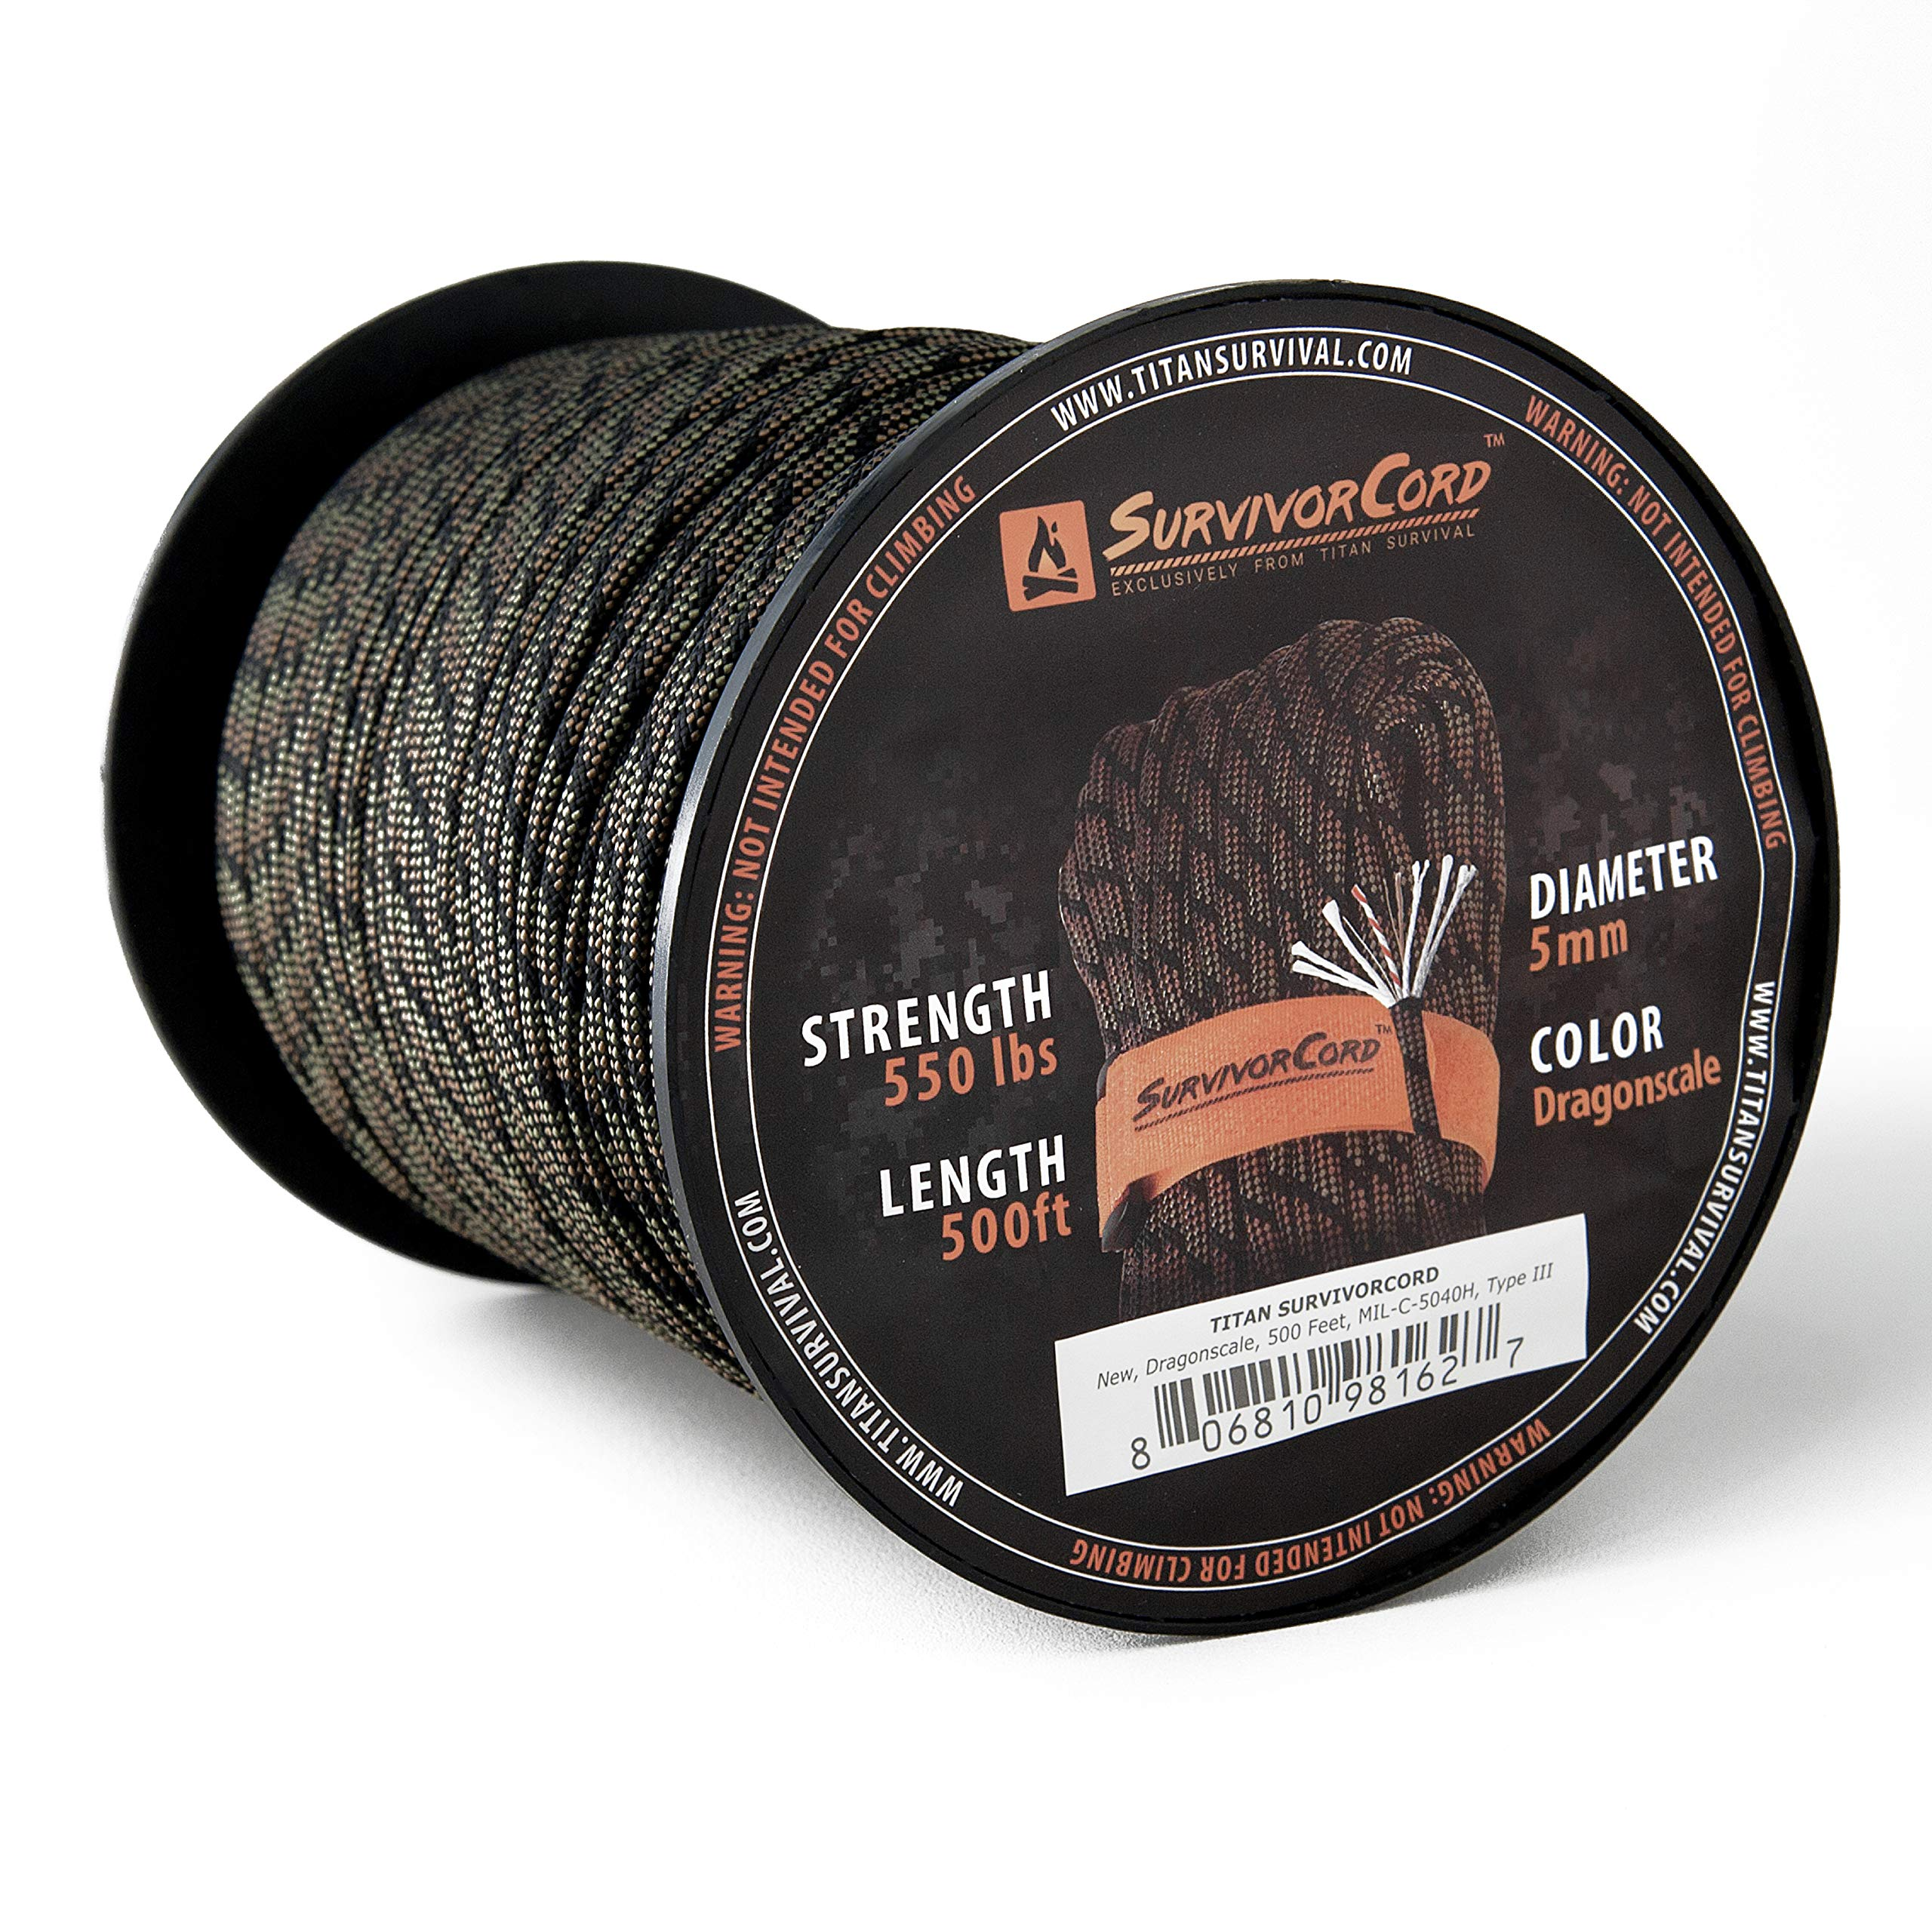 Titan SurvivorCord Spool | DRAGONSCALE, 500 FEET - Patented MIL-SPEC 550 Paracord (3/16'' Diameter) with Integrated Fishing Line, Fire-Starter, and Utility Wire. Free Paracord Project eBooks Included.